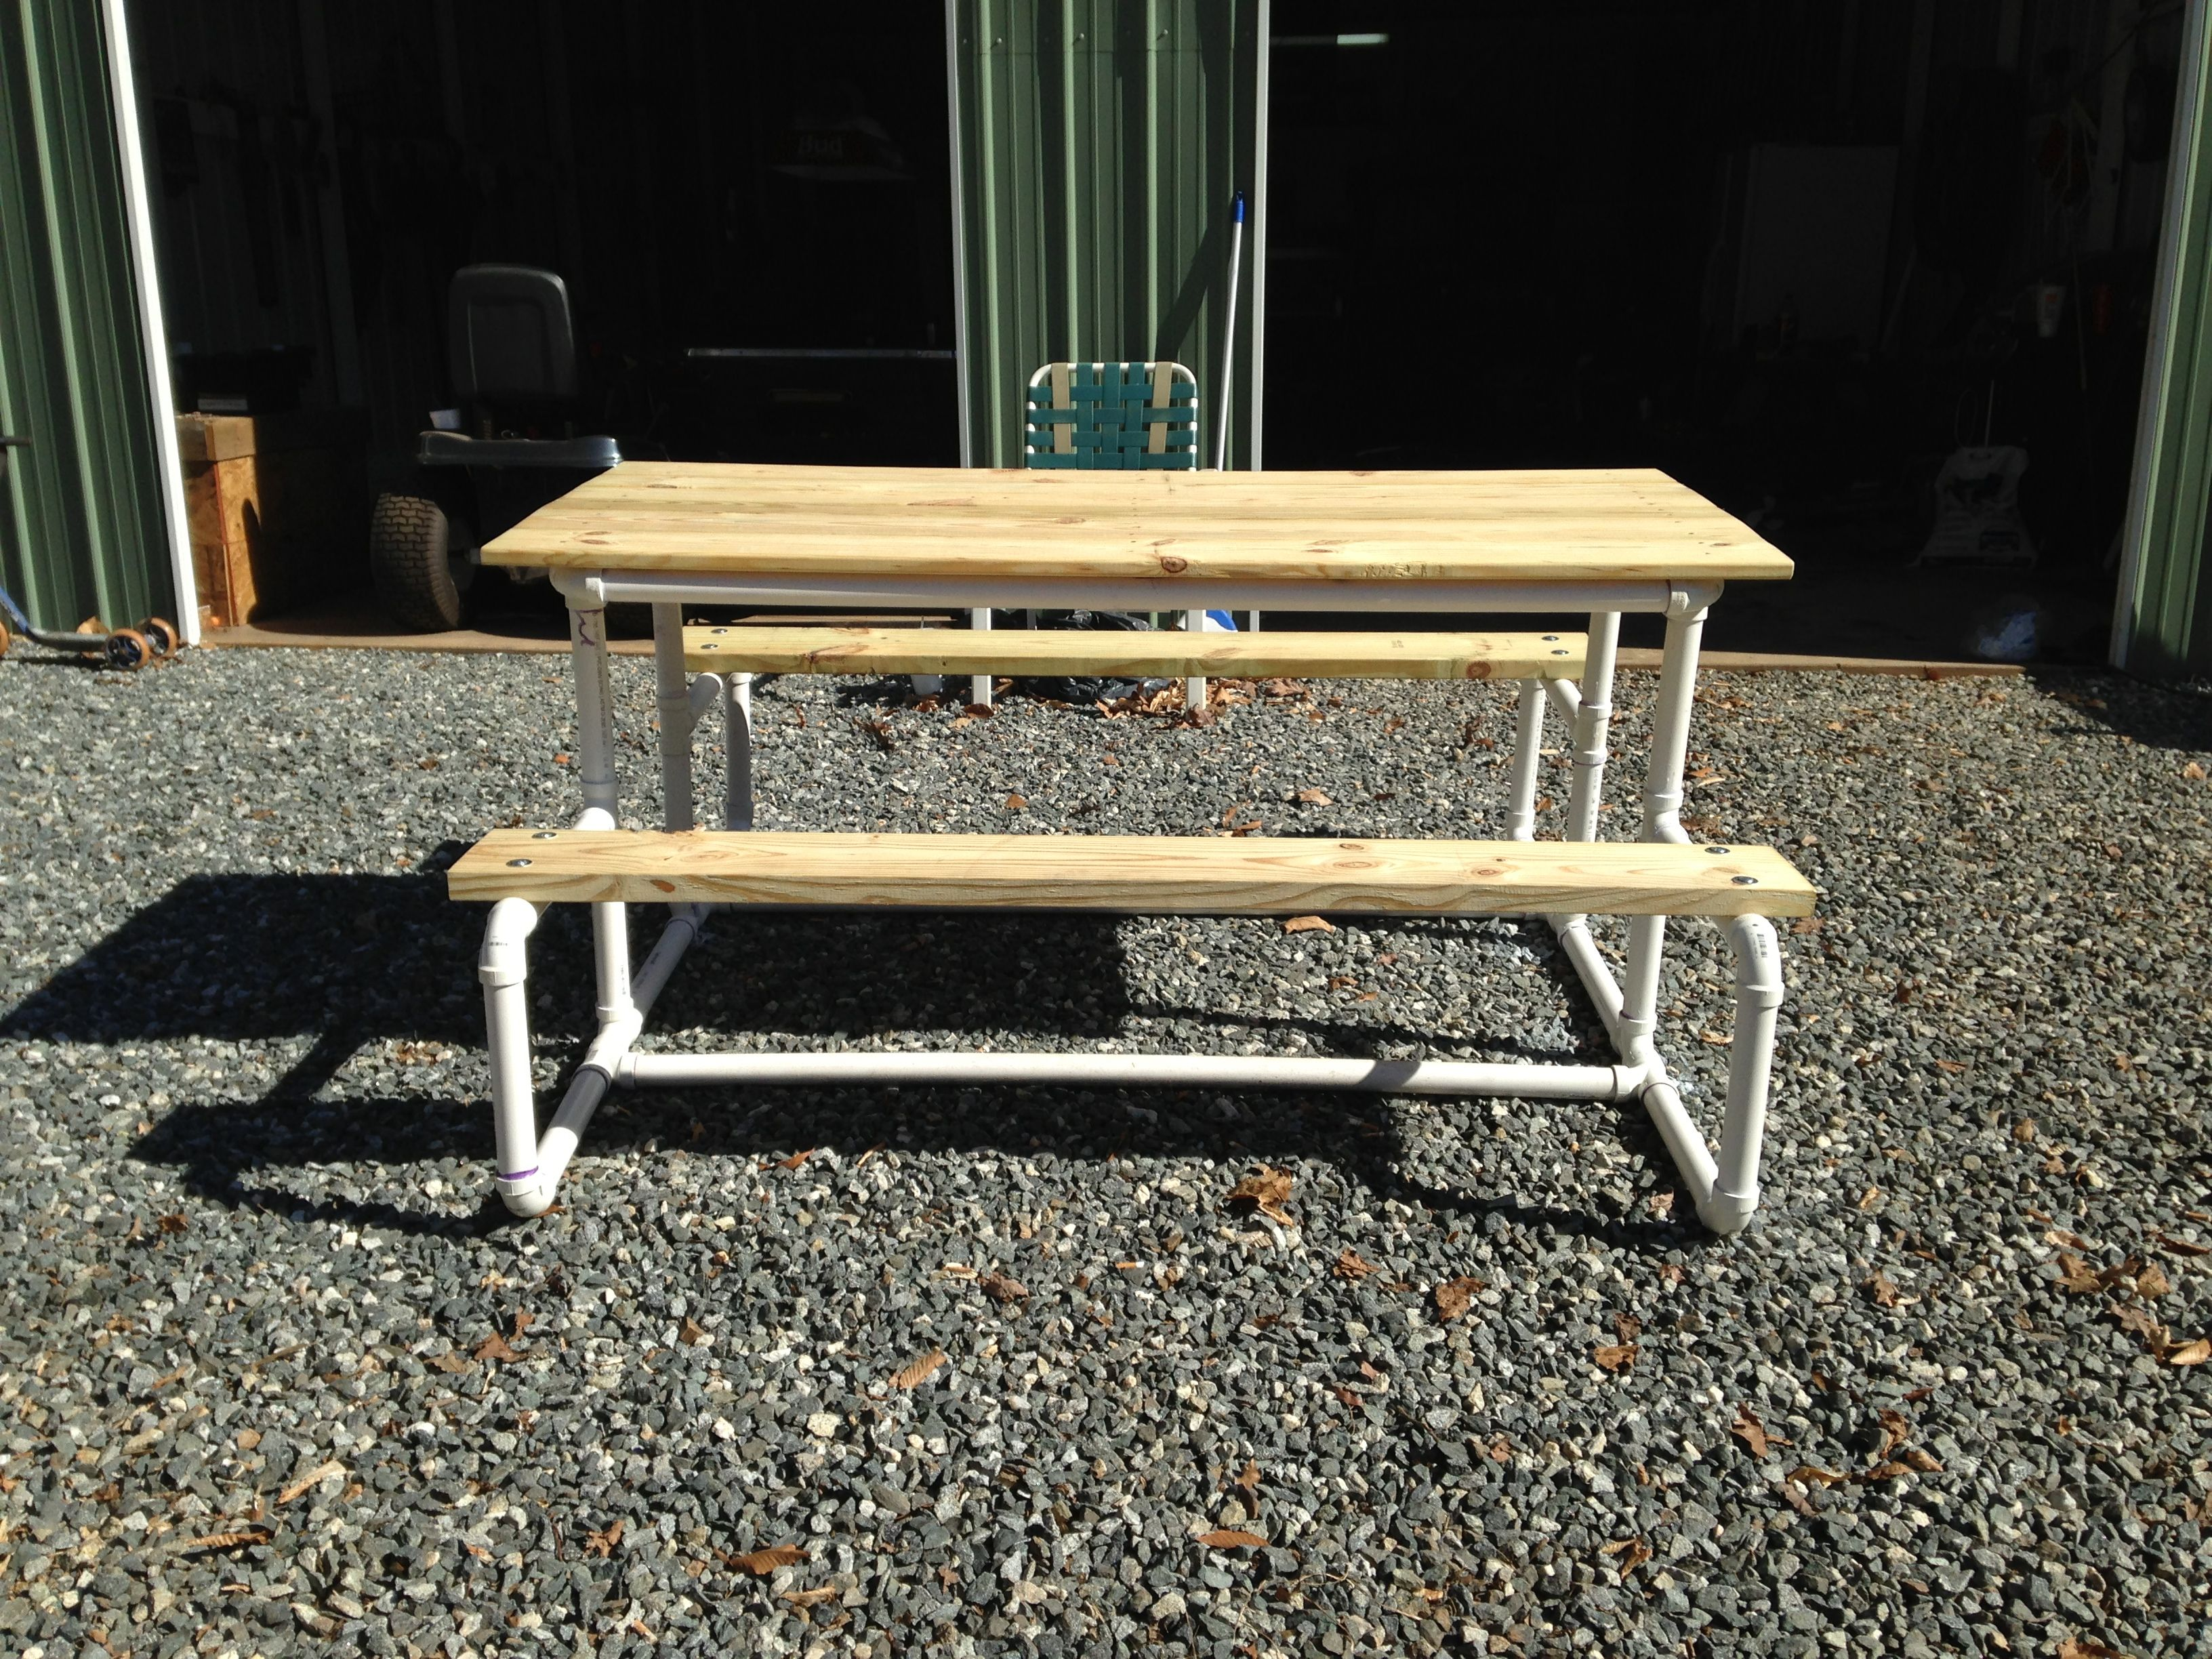 Wonderful Picnic Table Make With PVC Pipe   Could Do With Plumbing Metal Pipe